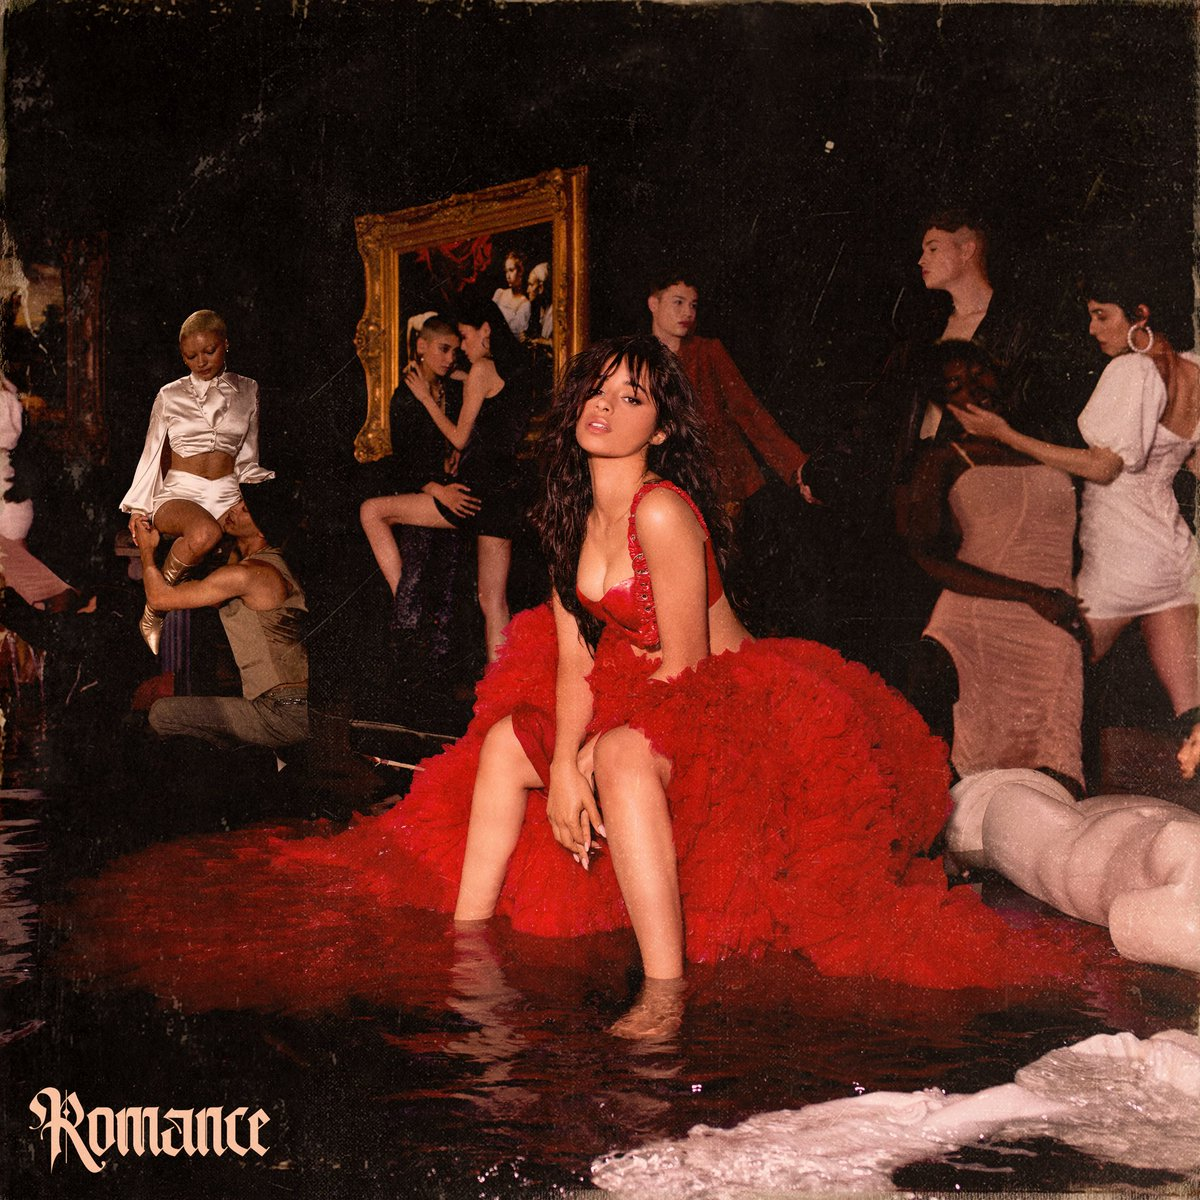 now entering Camila's World of Romance ❤️ #RomanceOutNow camilacabello.lnk.to/Romance